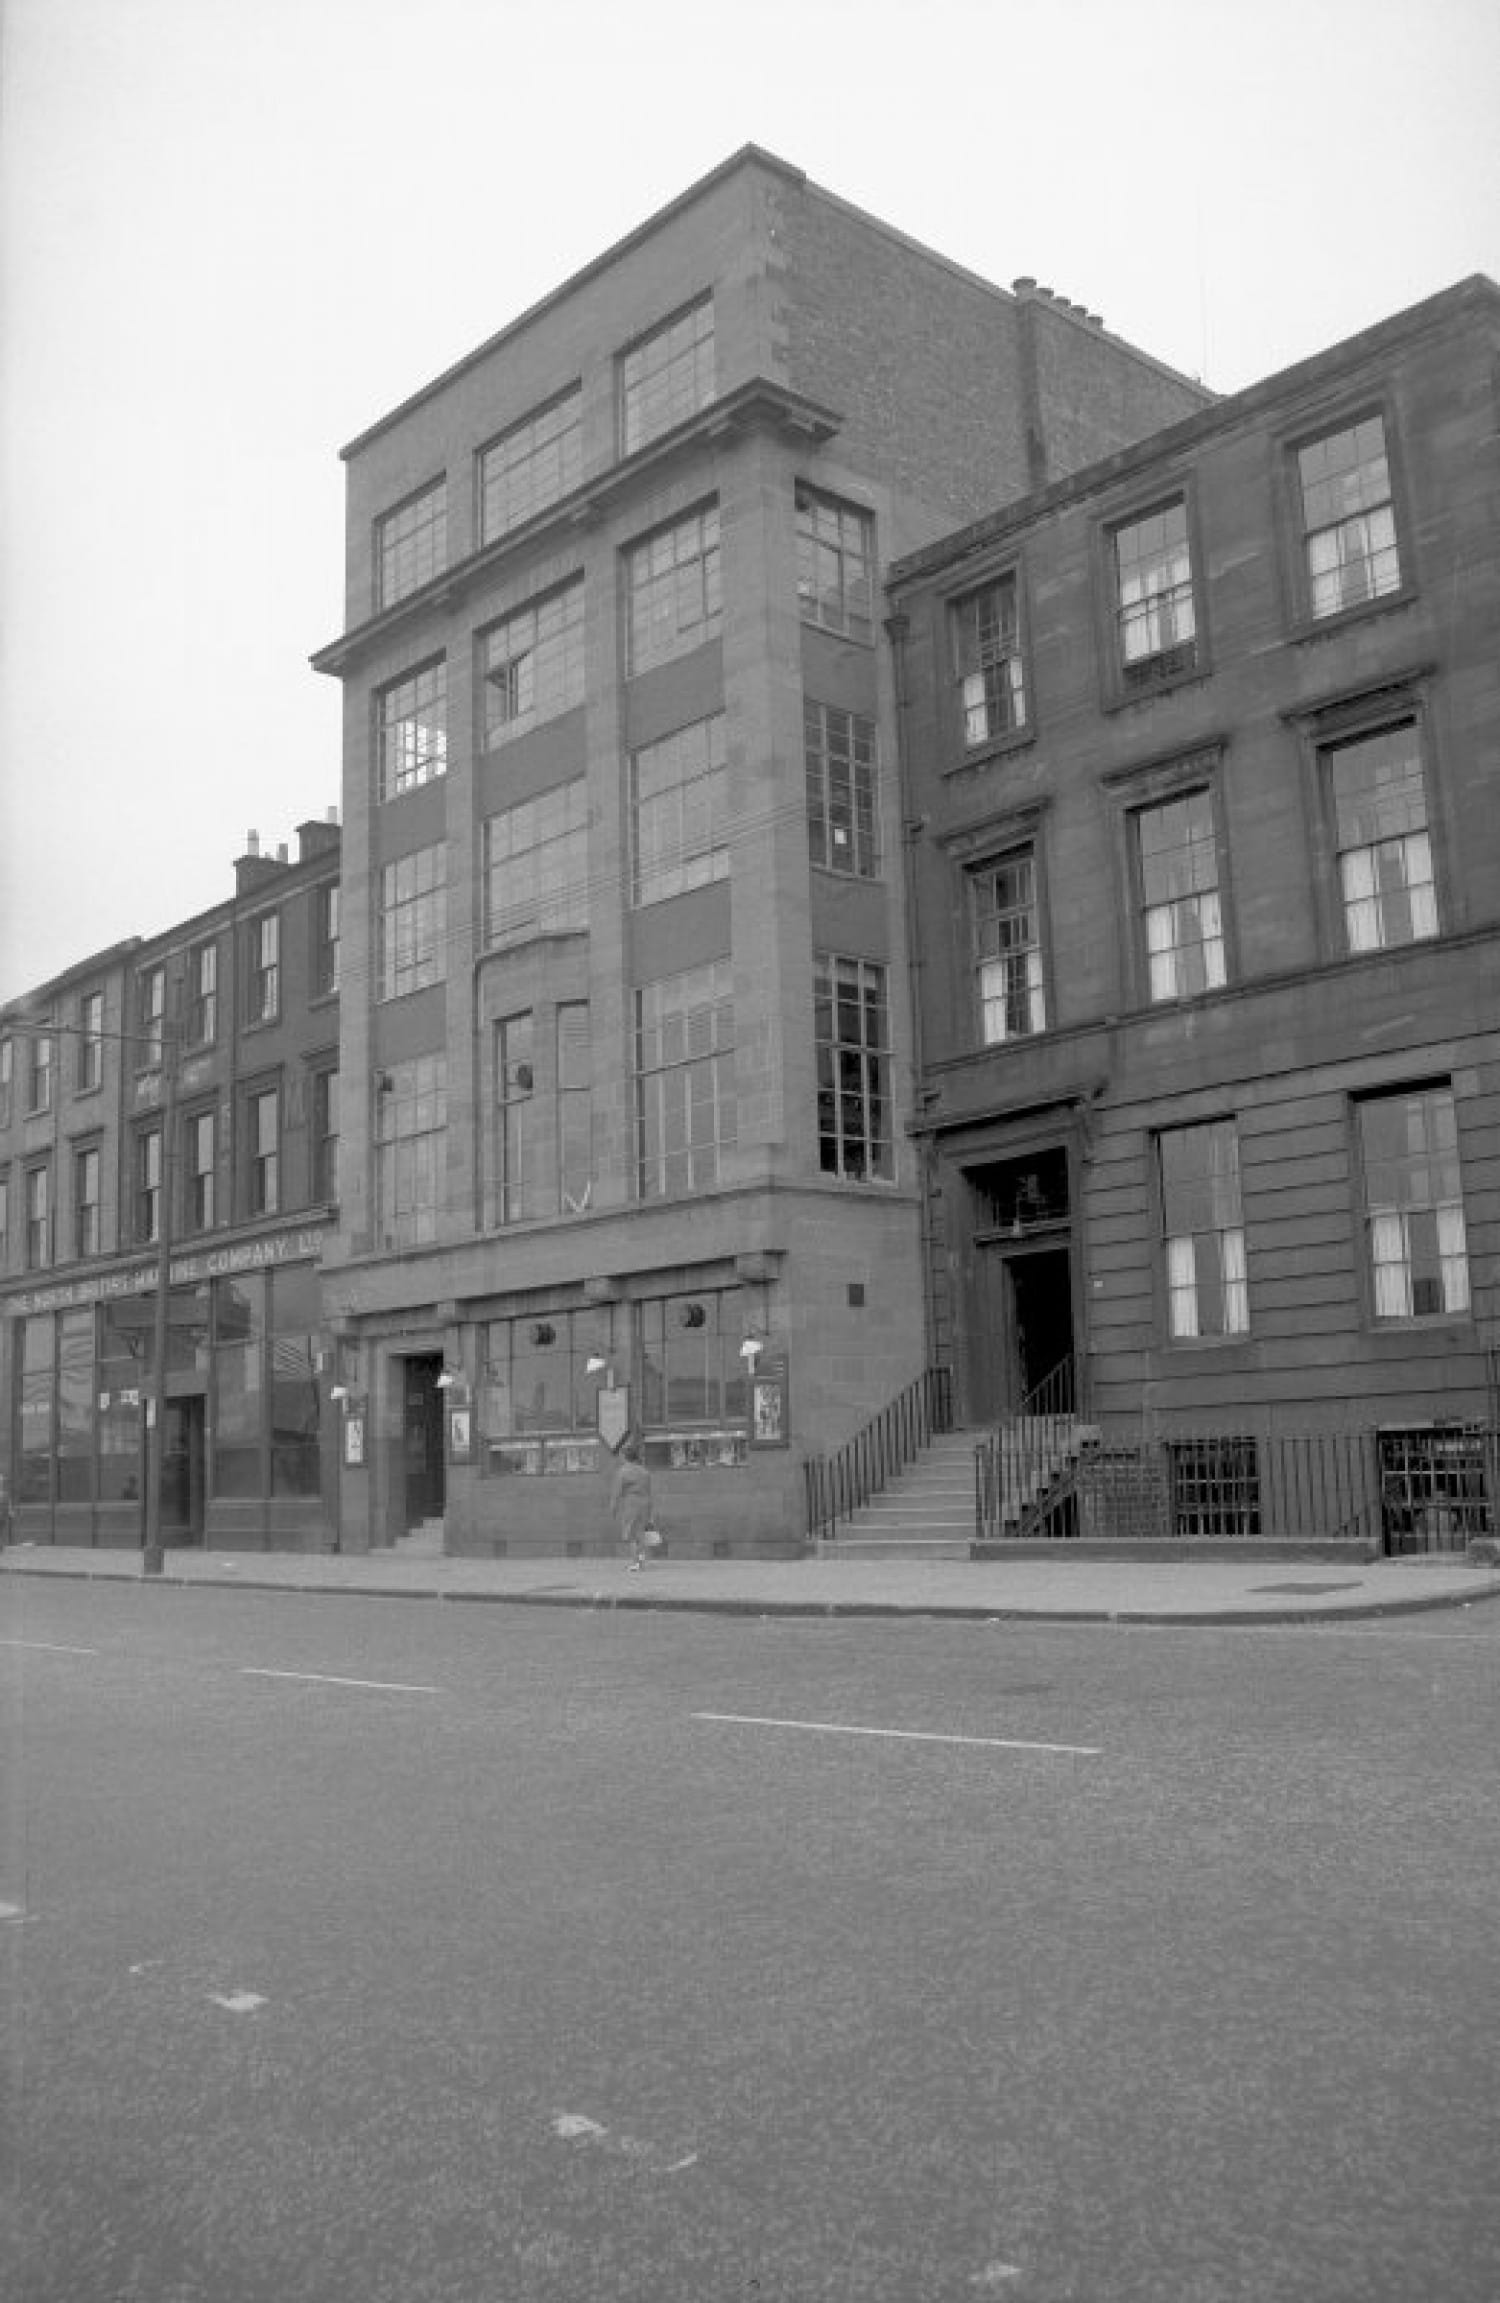 Dubrien House, at 196 Clyde Street, home to Scottish Studios and Engravers Ltd. (Picture: John R Hume)